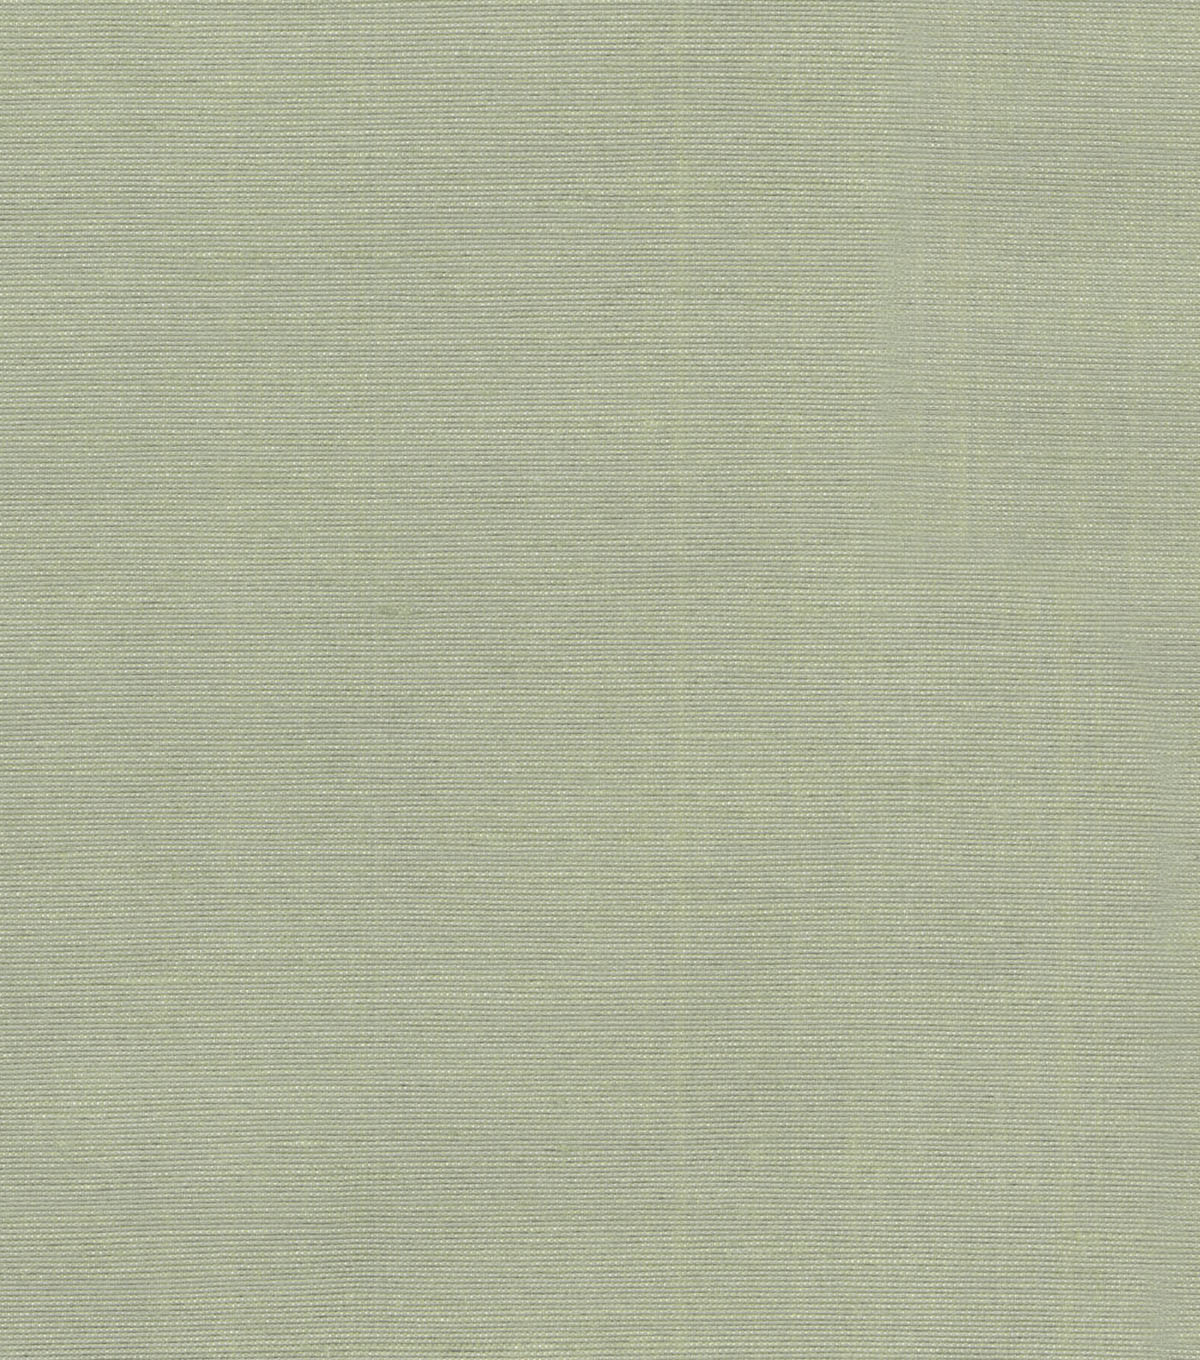 P/K Lifestyles Multi-Purpose Decor Fabric-Bangalore Sage